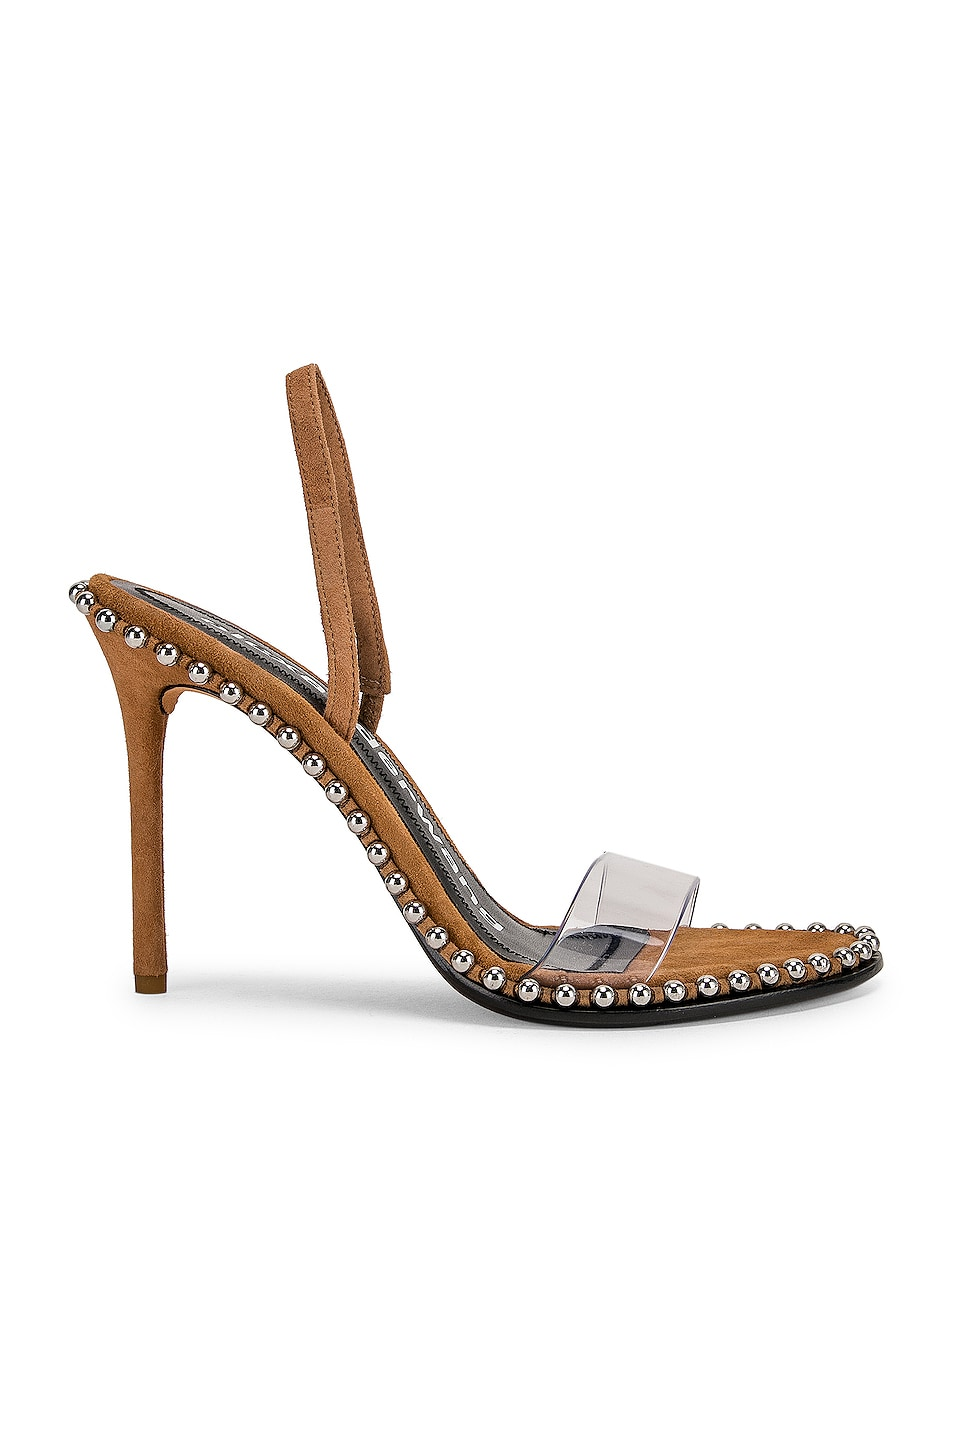 Image 1 of Alexander Wang Nova Suede Heel in Clay